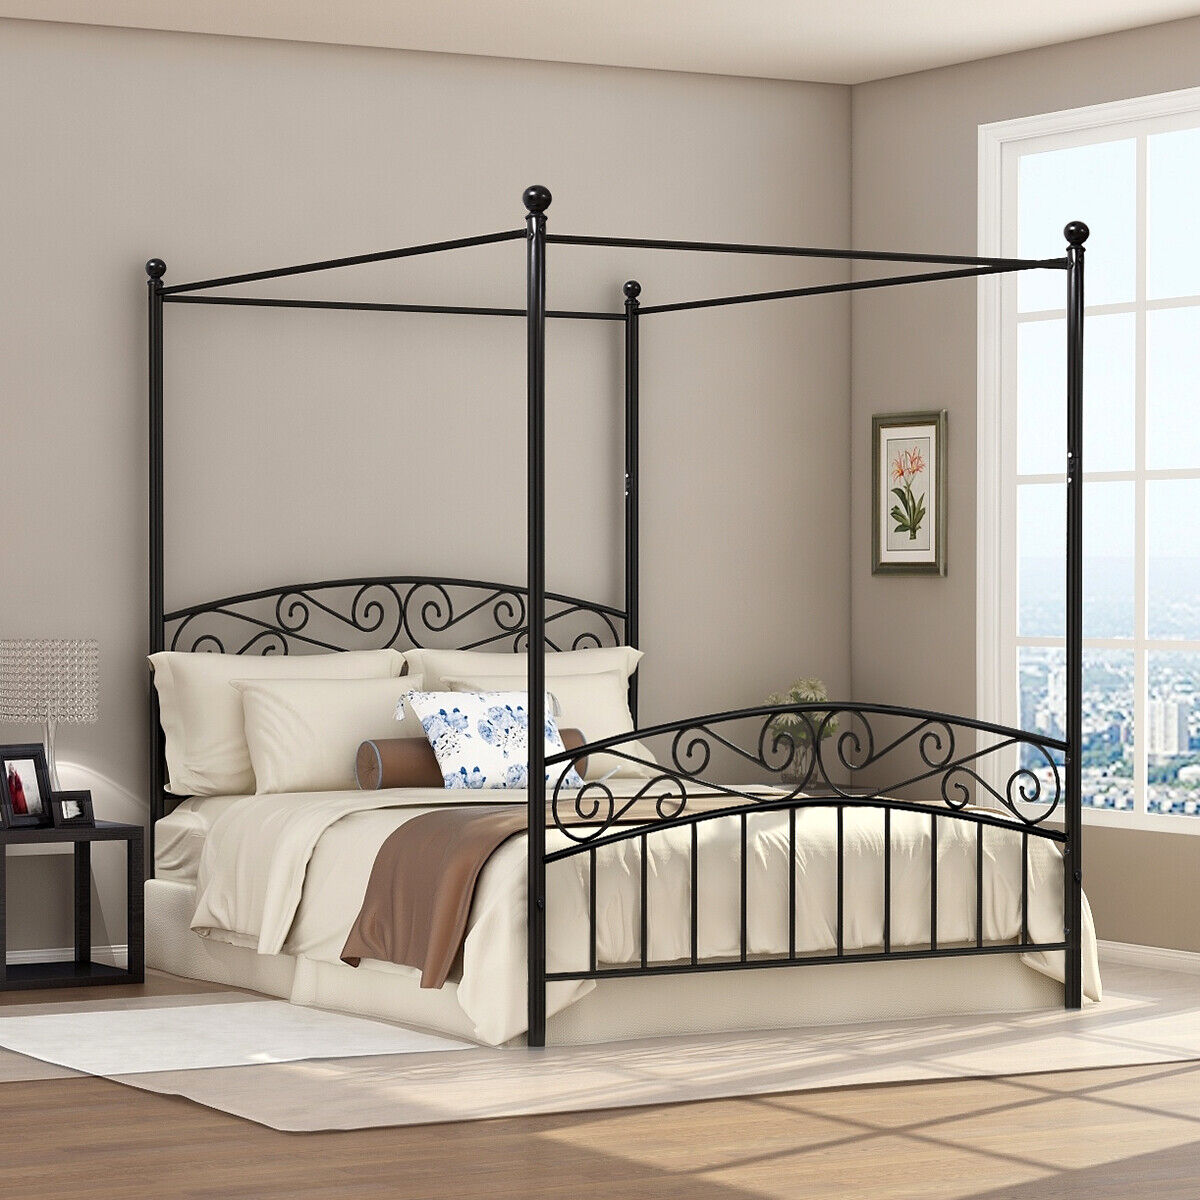 - Bailey Twin Size Metal Canopy Bed For Sale Online EBay